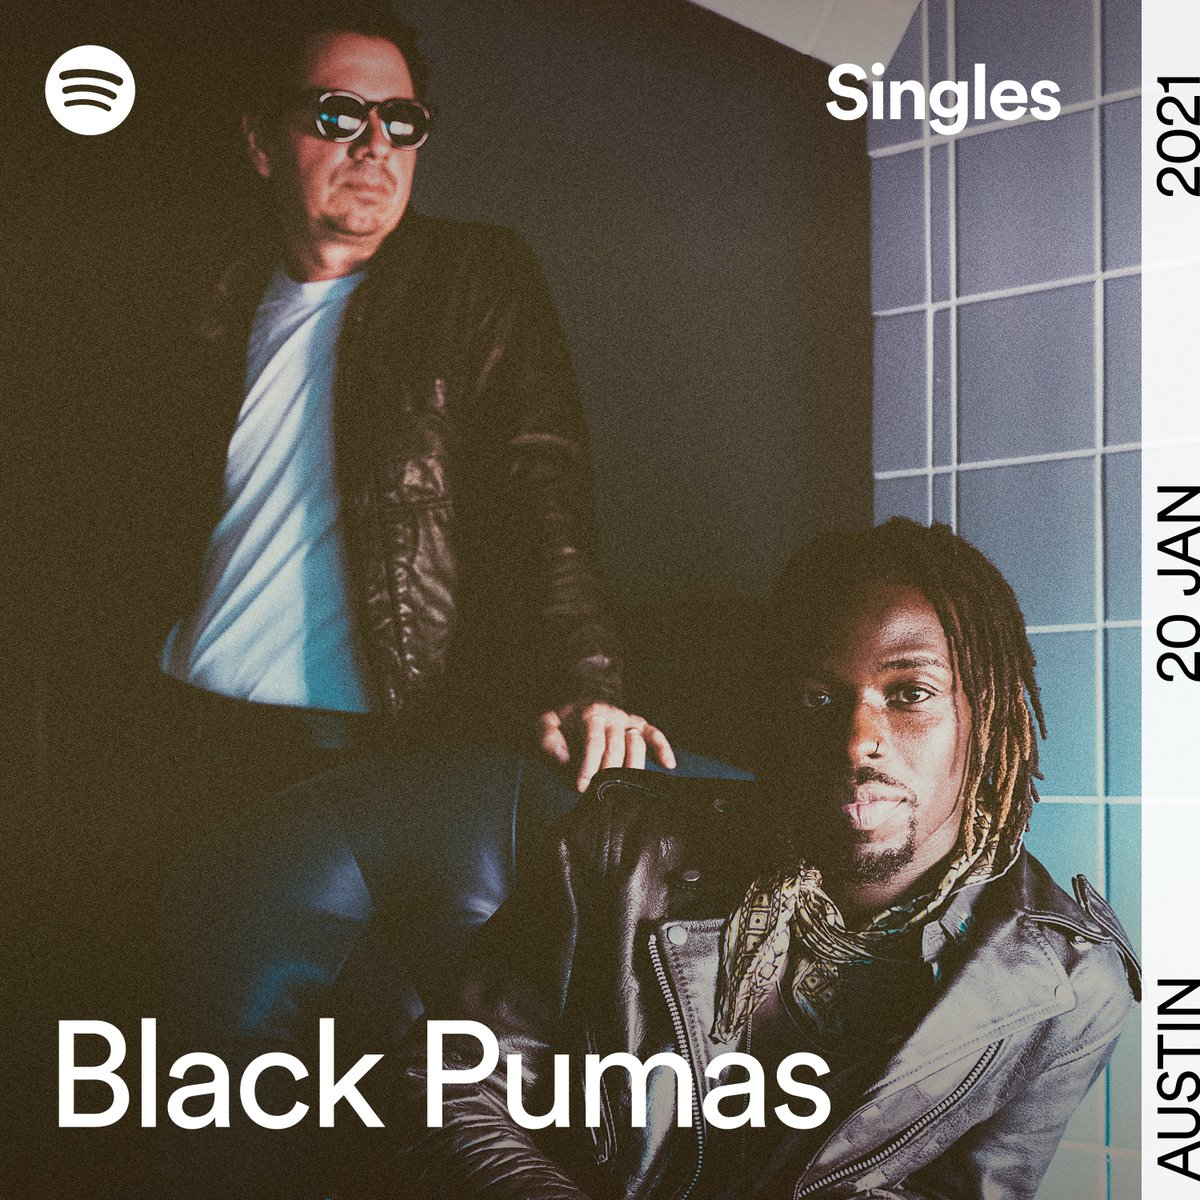 A little mid-week gift ✨ #BlackPumas gave us two tracks for the latest #SpotifySingles. Turn up the volume on #Colors and #SugarMan